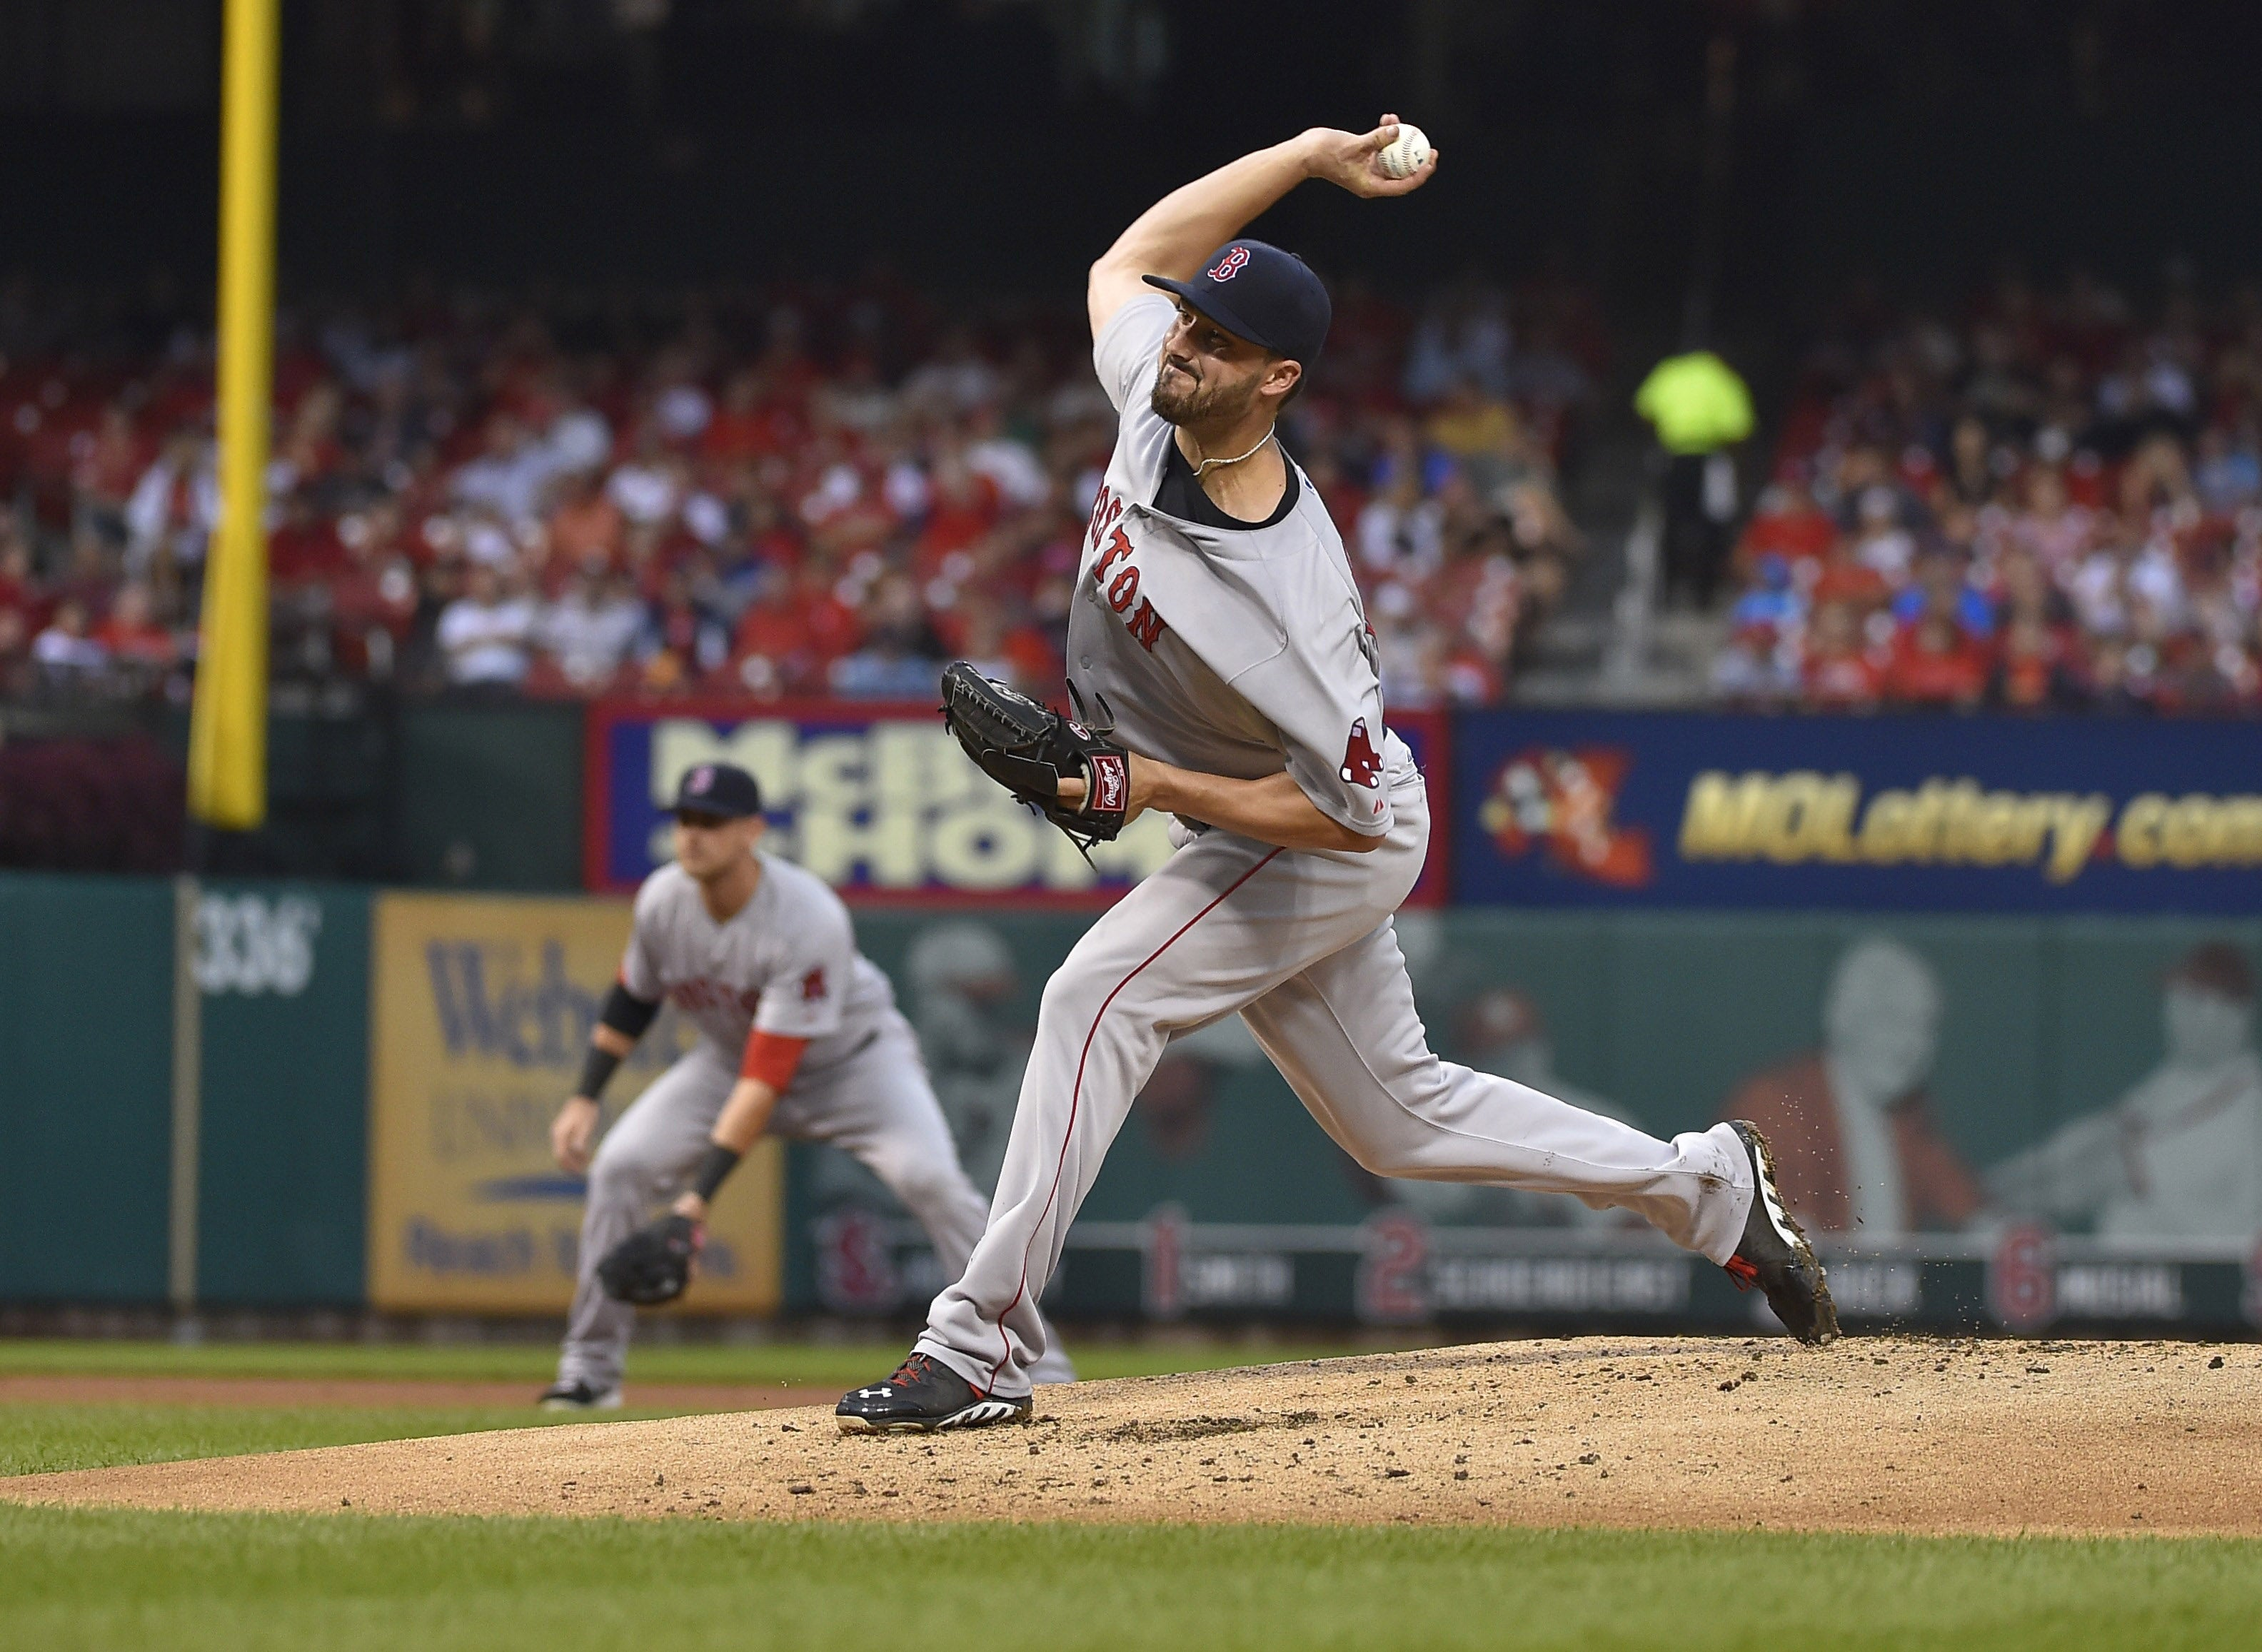 2014-08-08T013540Z_1431638637_NOCID_RTRMADP_3_MLB-BOSTON-RED-SOX-AT-ST-LOUIS-CARDINALS.jpg